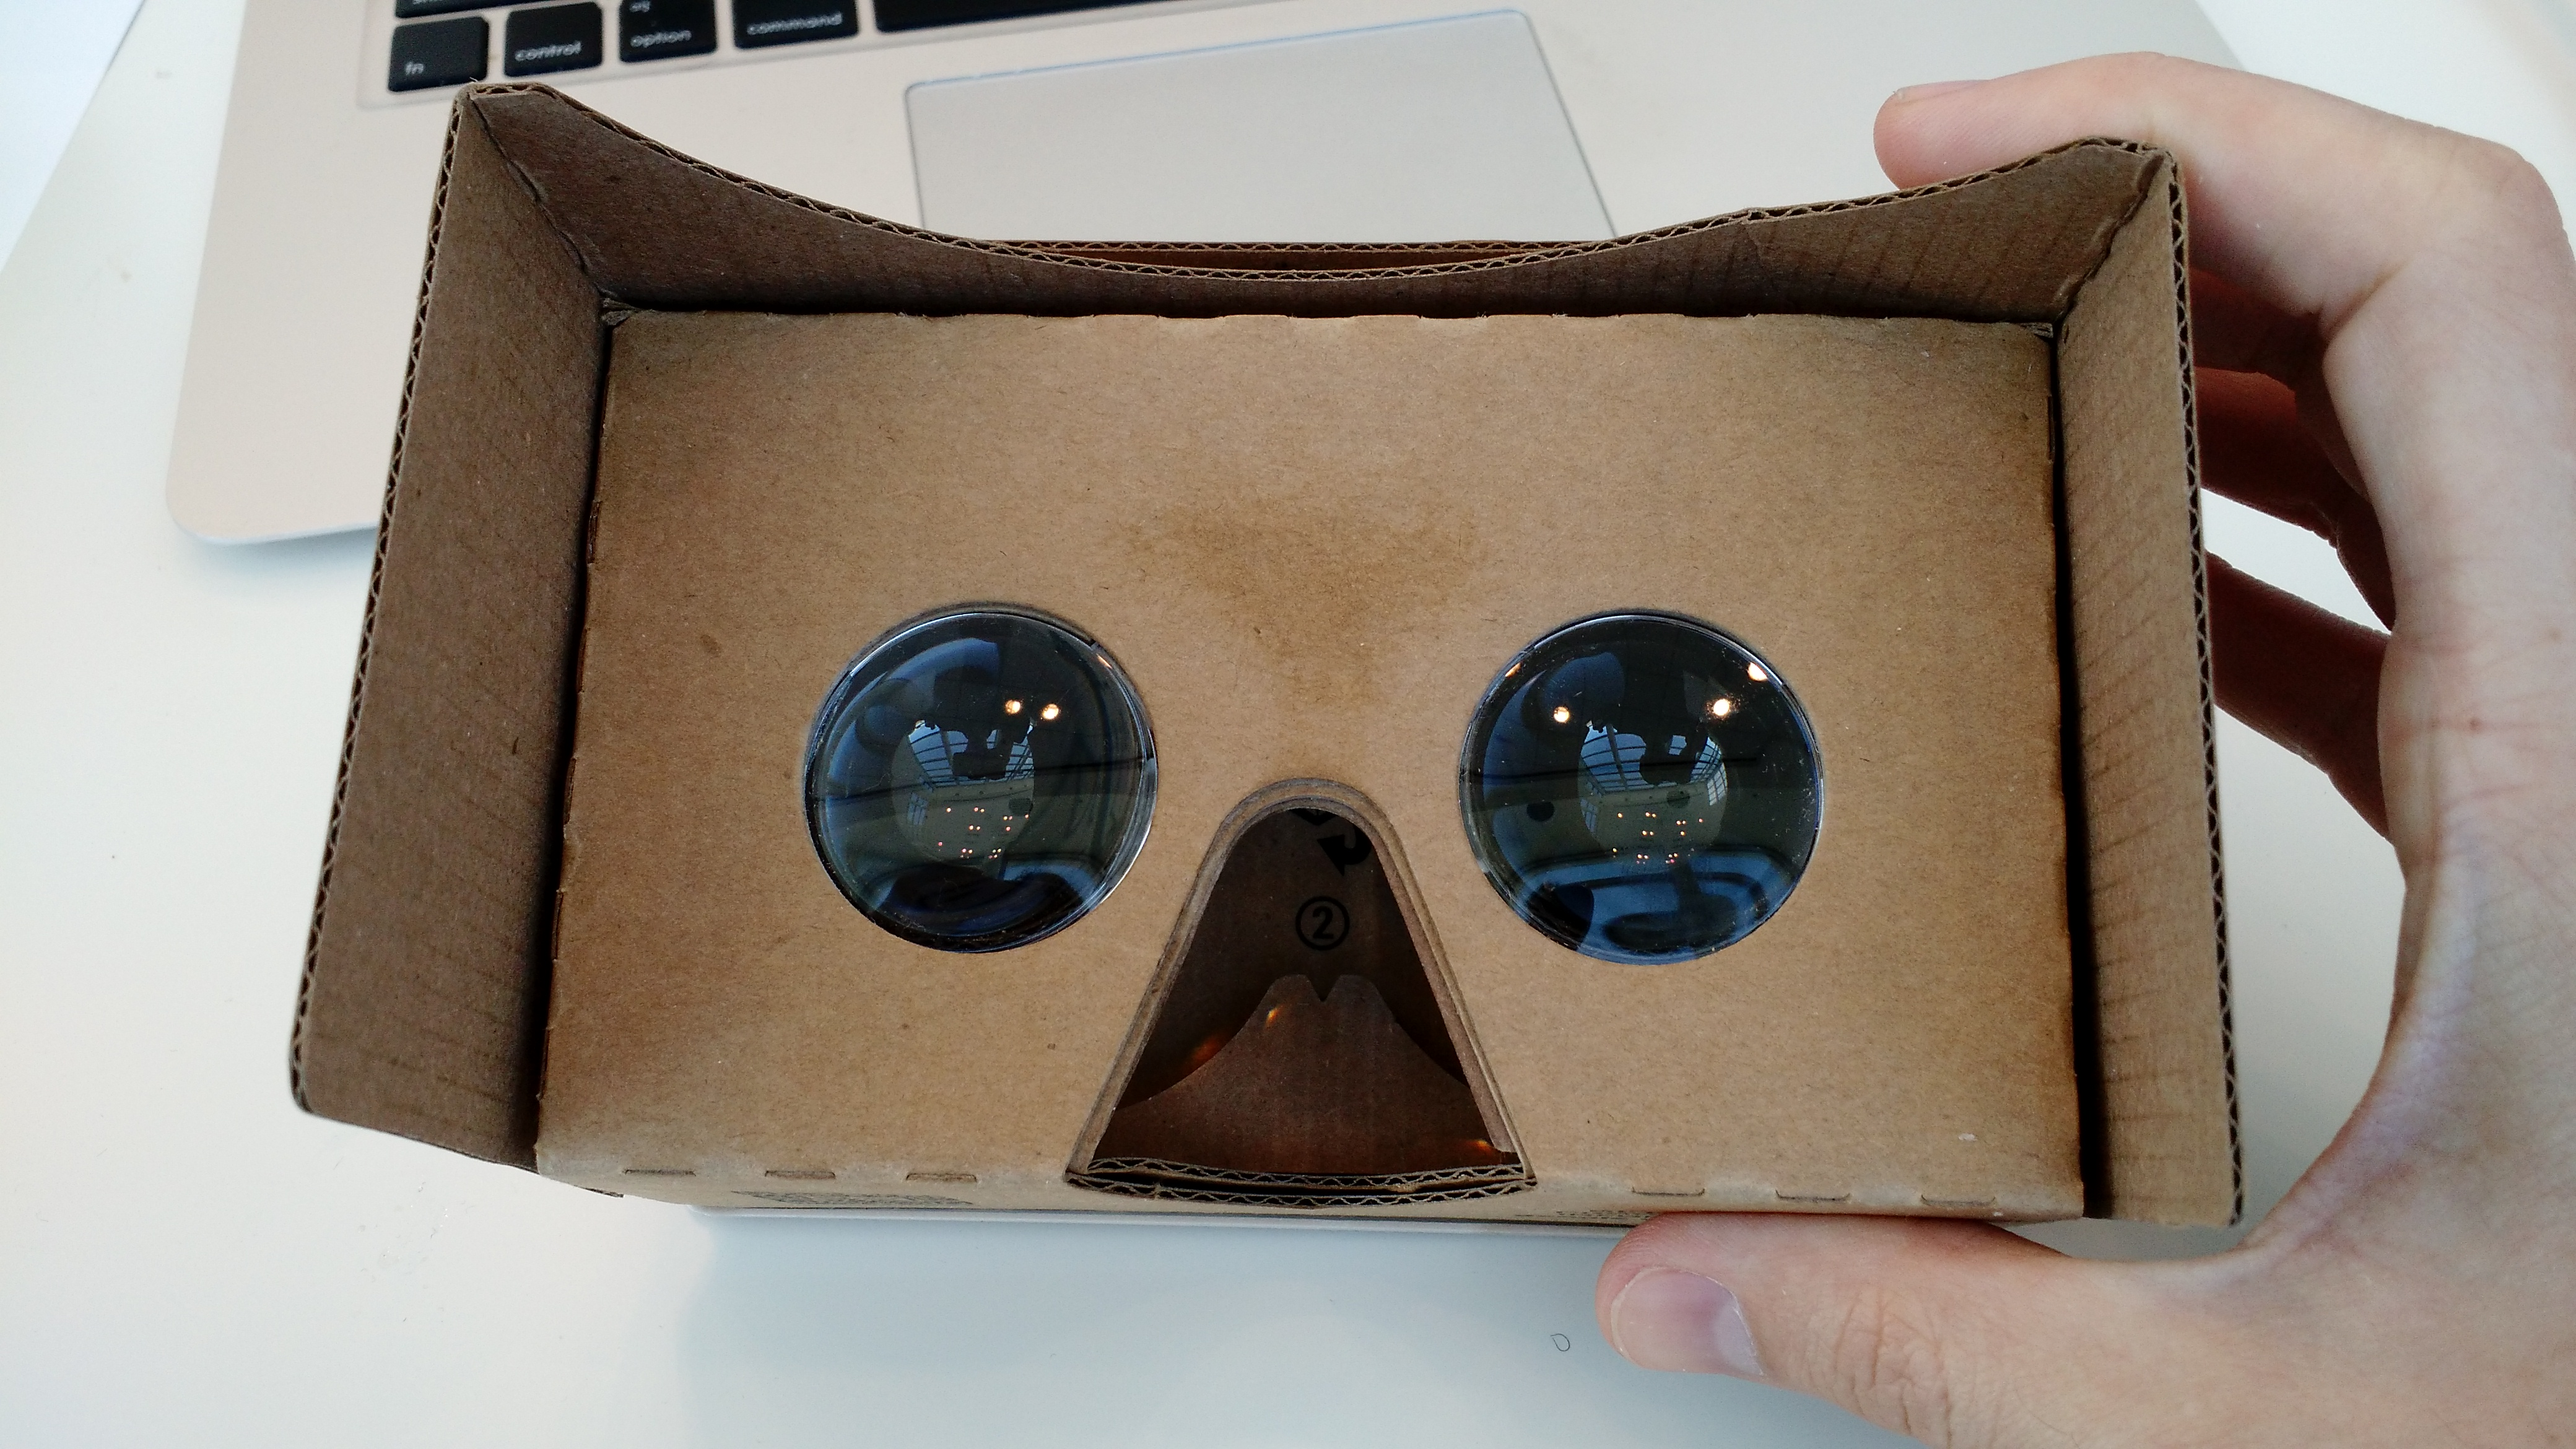 Google Cardboard v2, given out at the 2015 Google I/O conference in San Francisco.